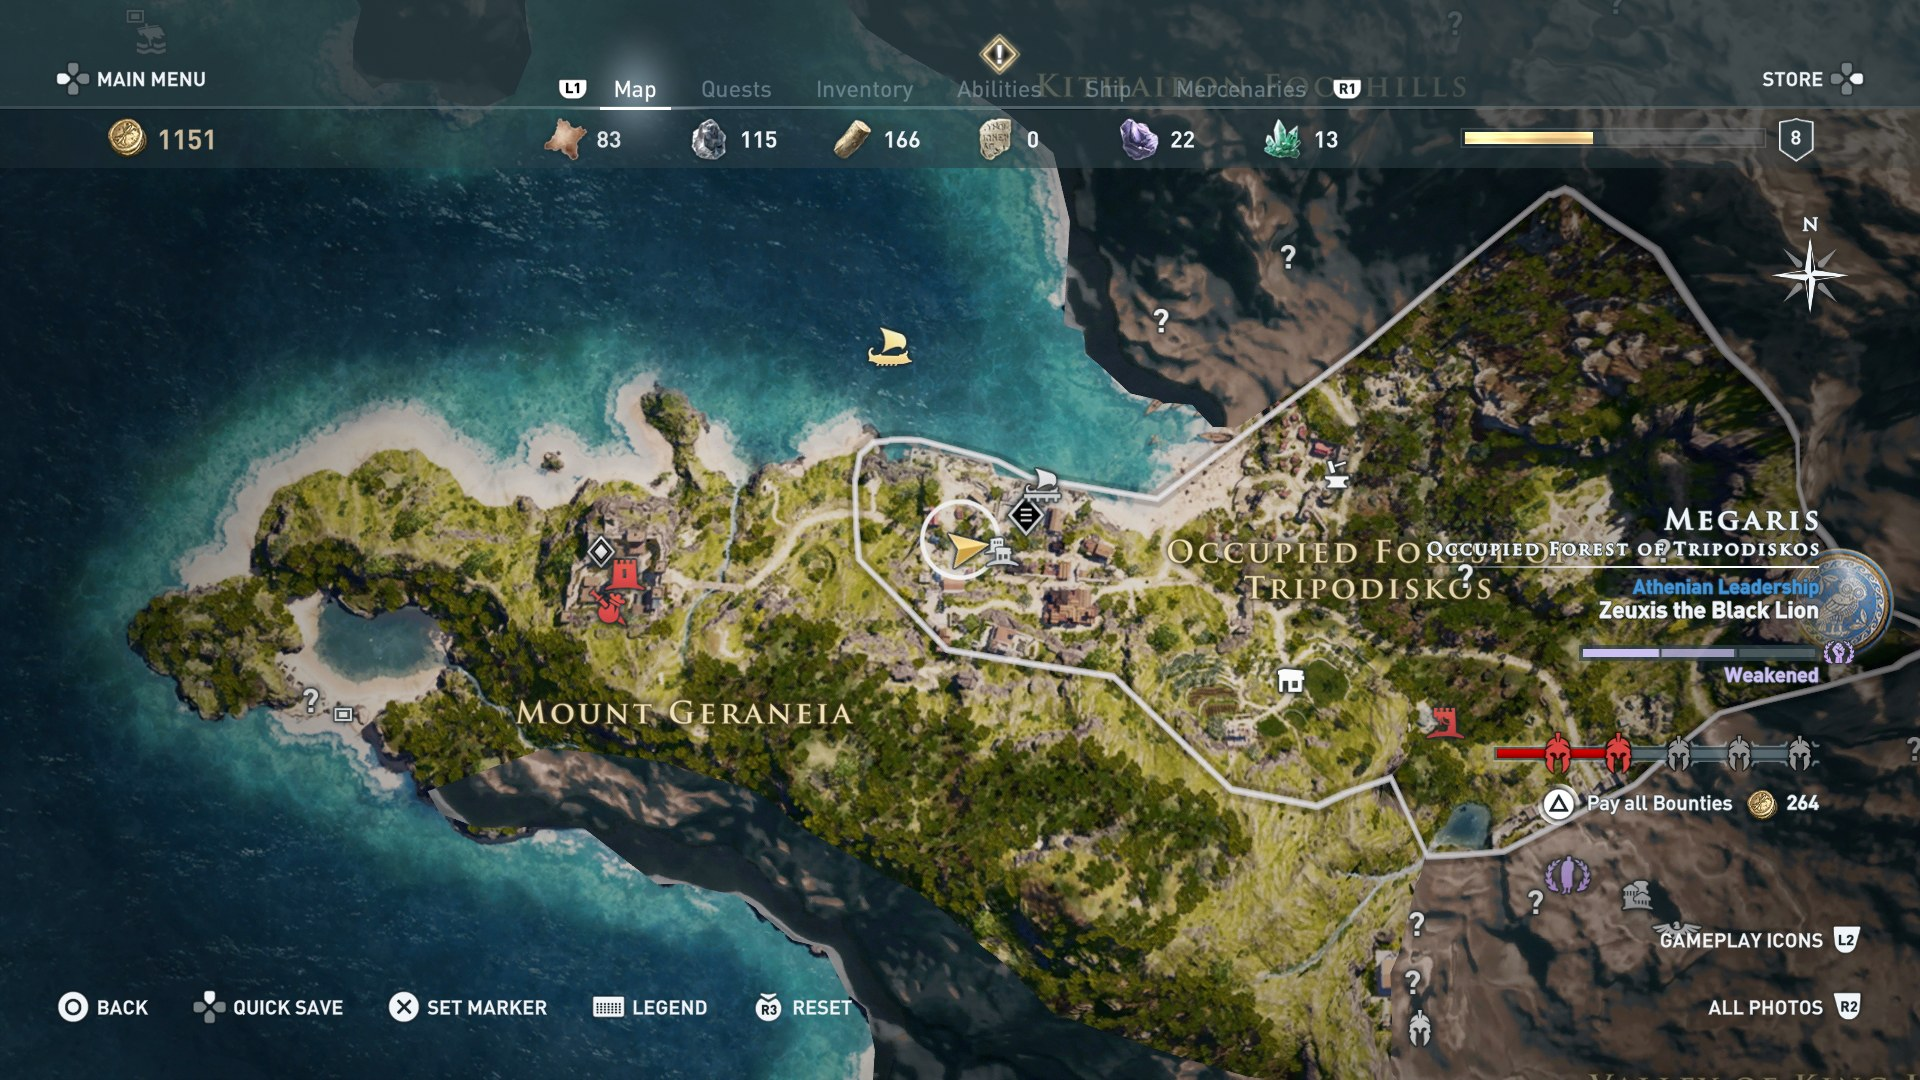 Assassin's Creed Odyssey Conquest Battles - How to Quickly